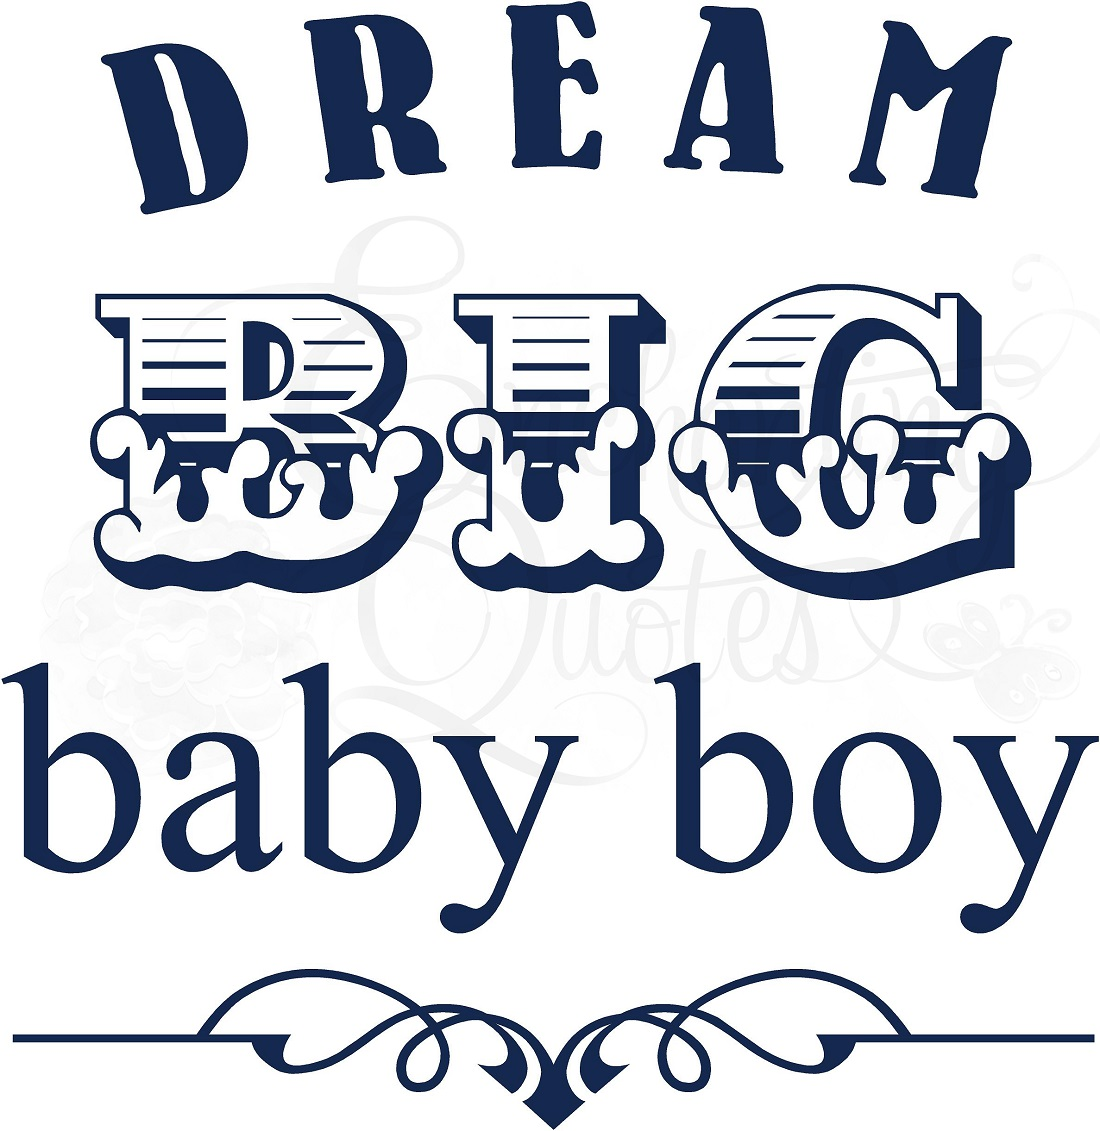 Cute Quotes For New Born Baby Boy: Baby Boy Quotes And Sayings. QuotesGram